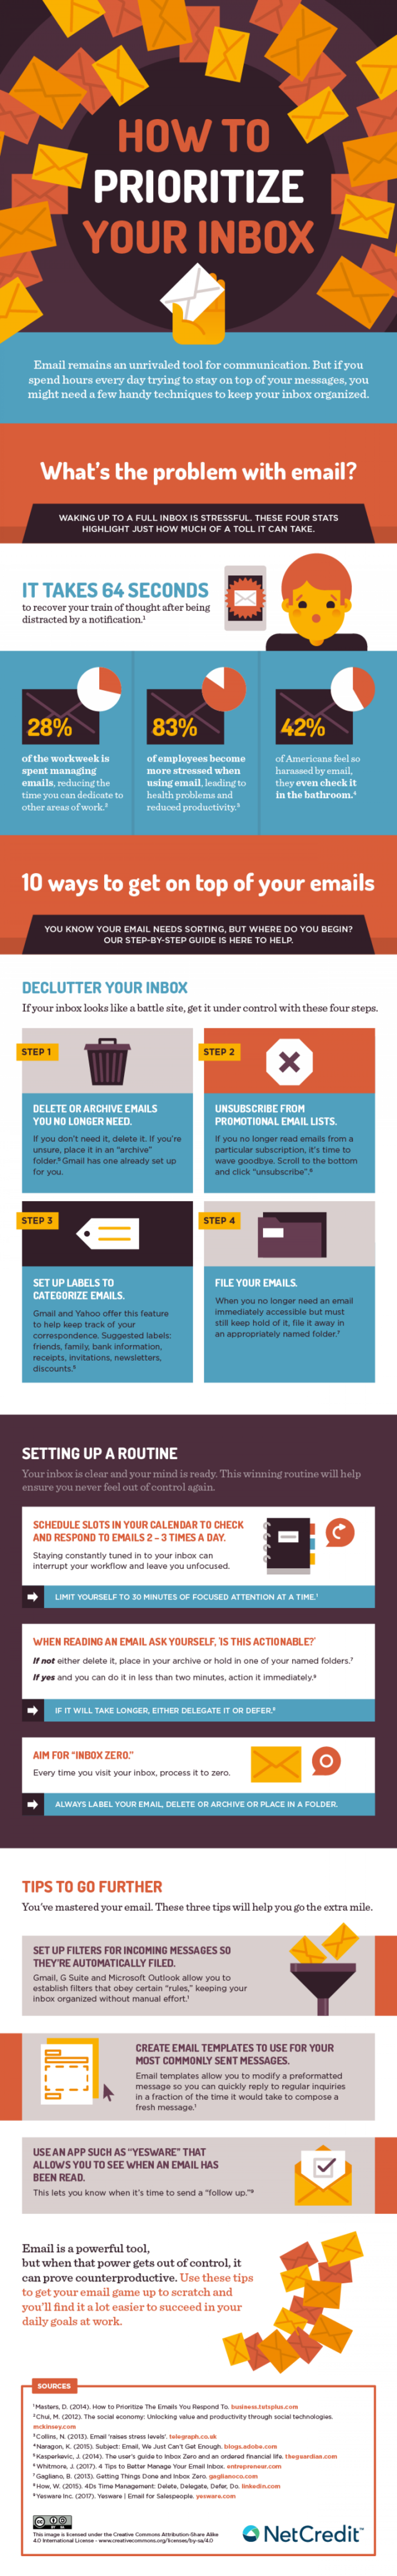 How to Prioritize Your Inbox Infographic